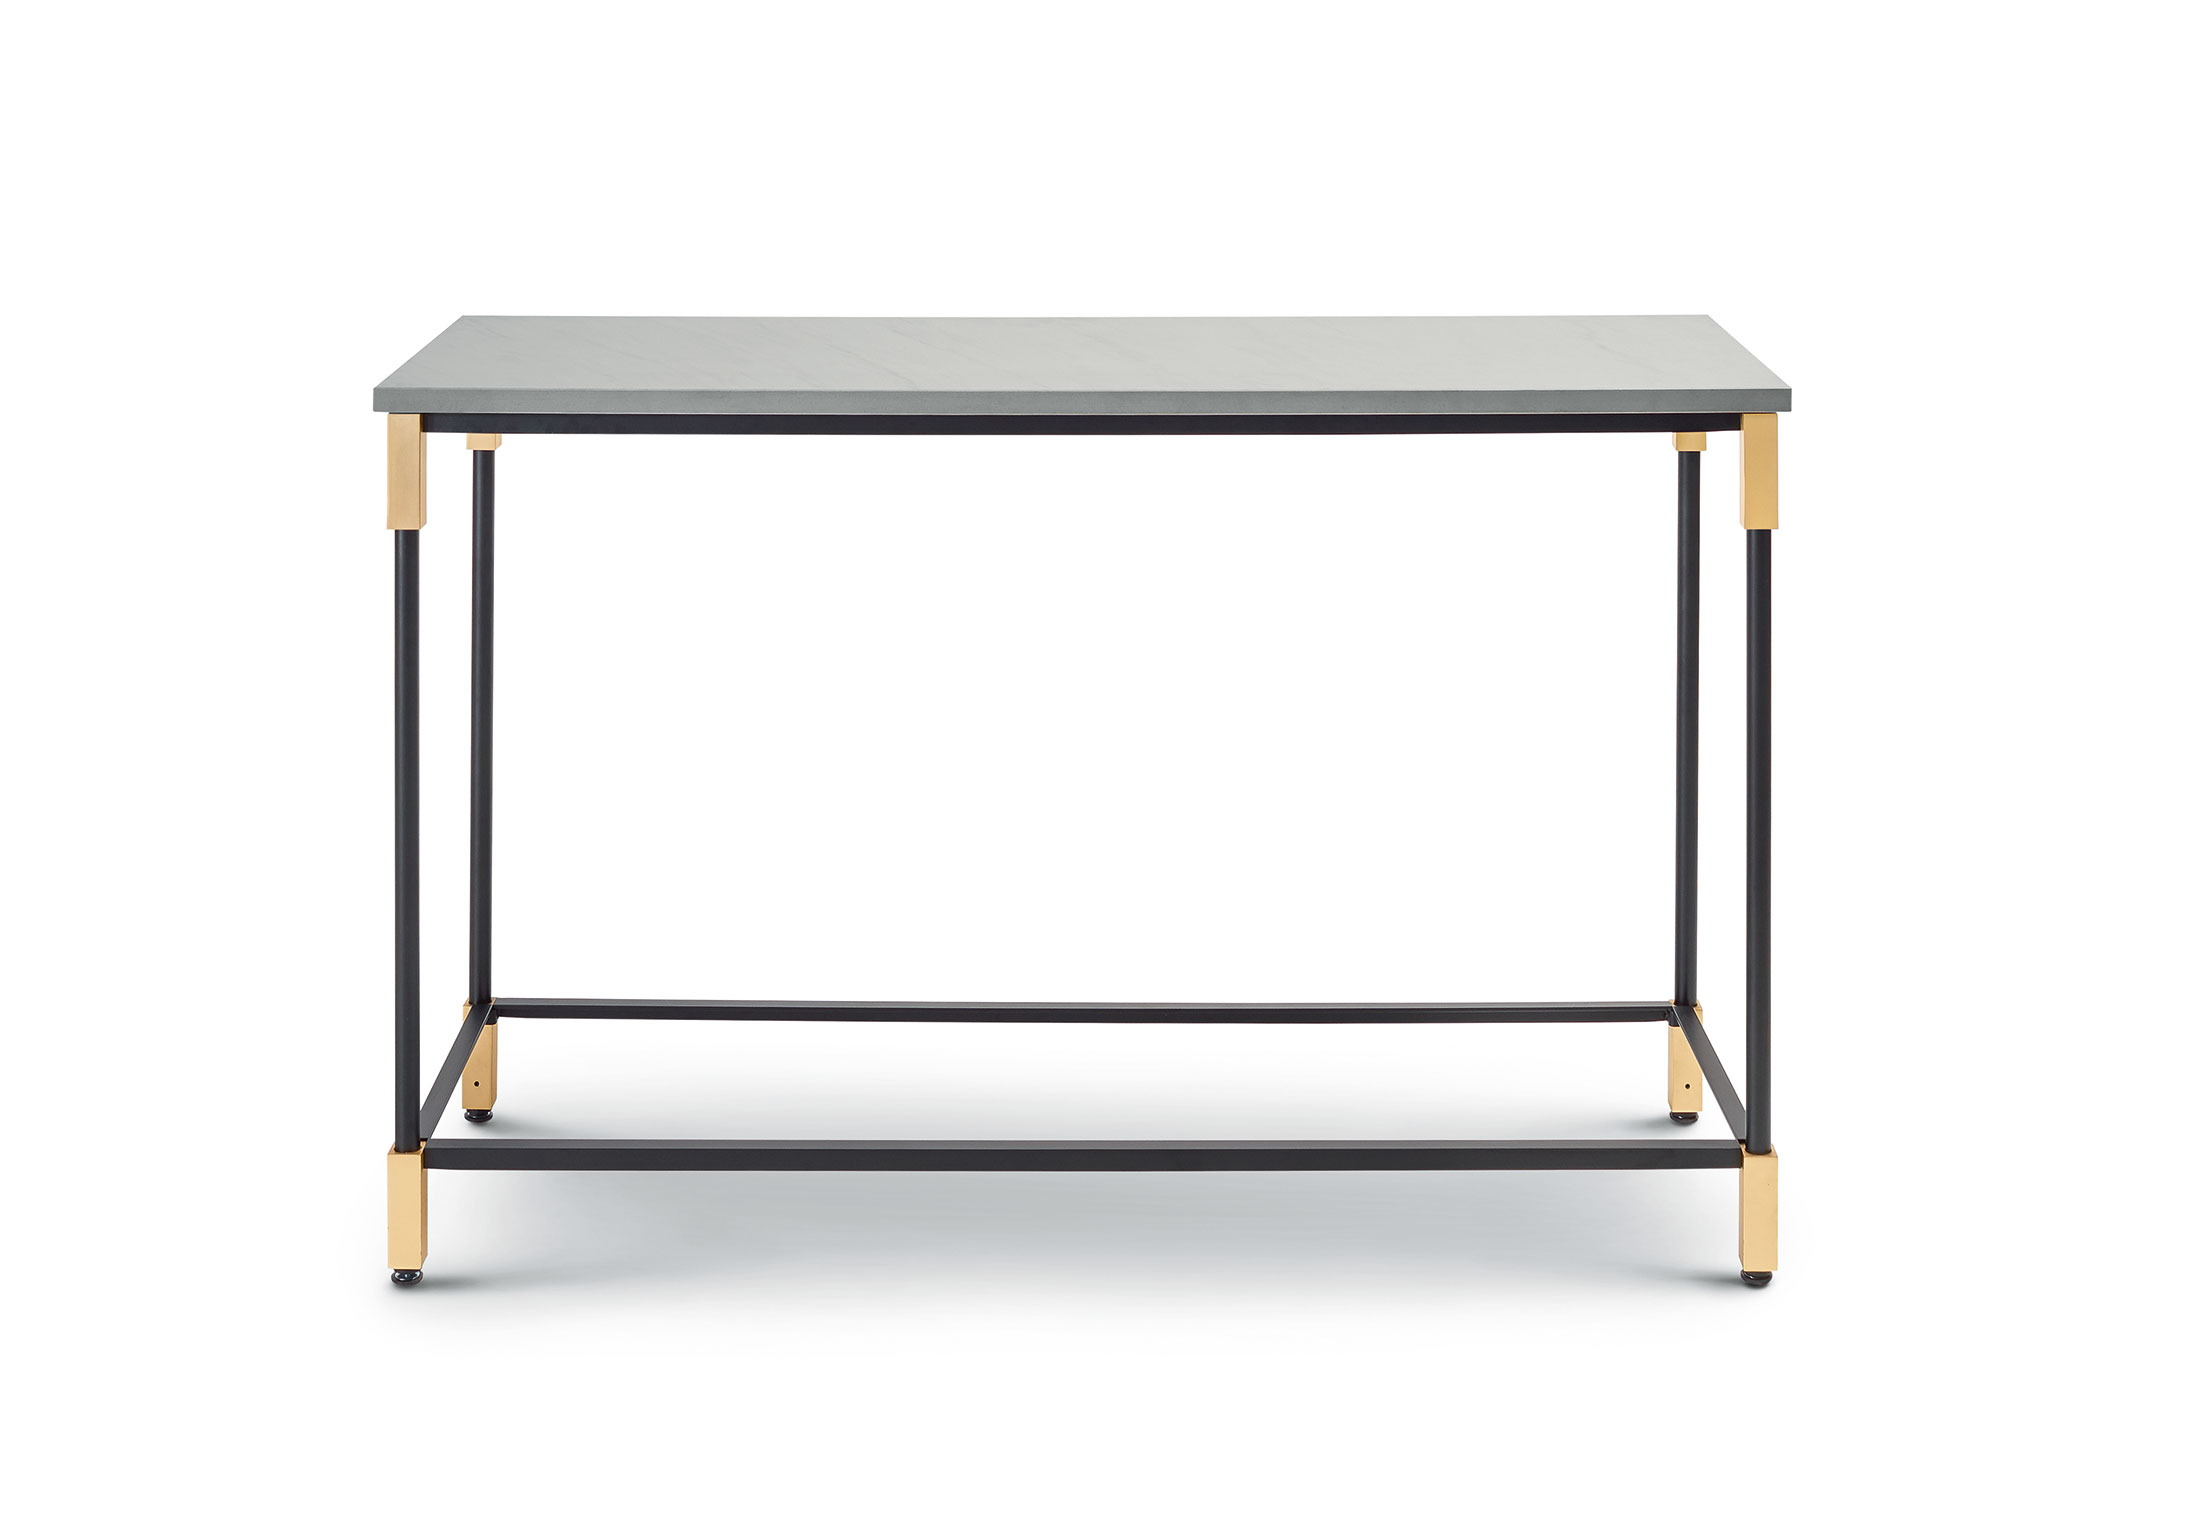 Match Console Tablearflex | Stylepark For Natural 2 Door Plasma Console Tables (View 3 of 20)